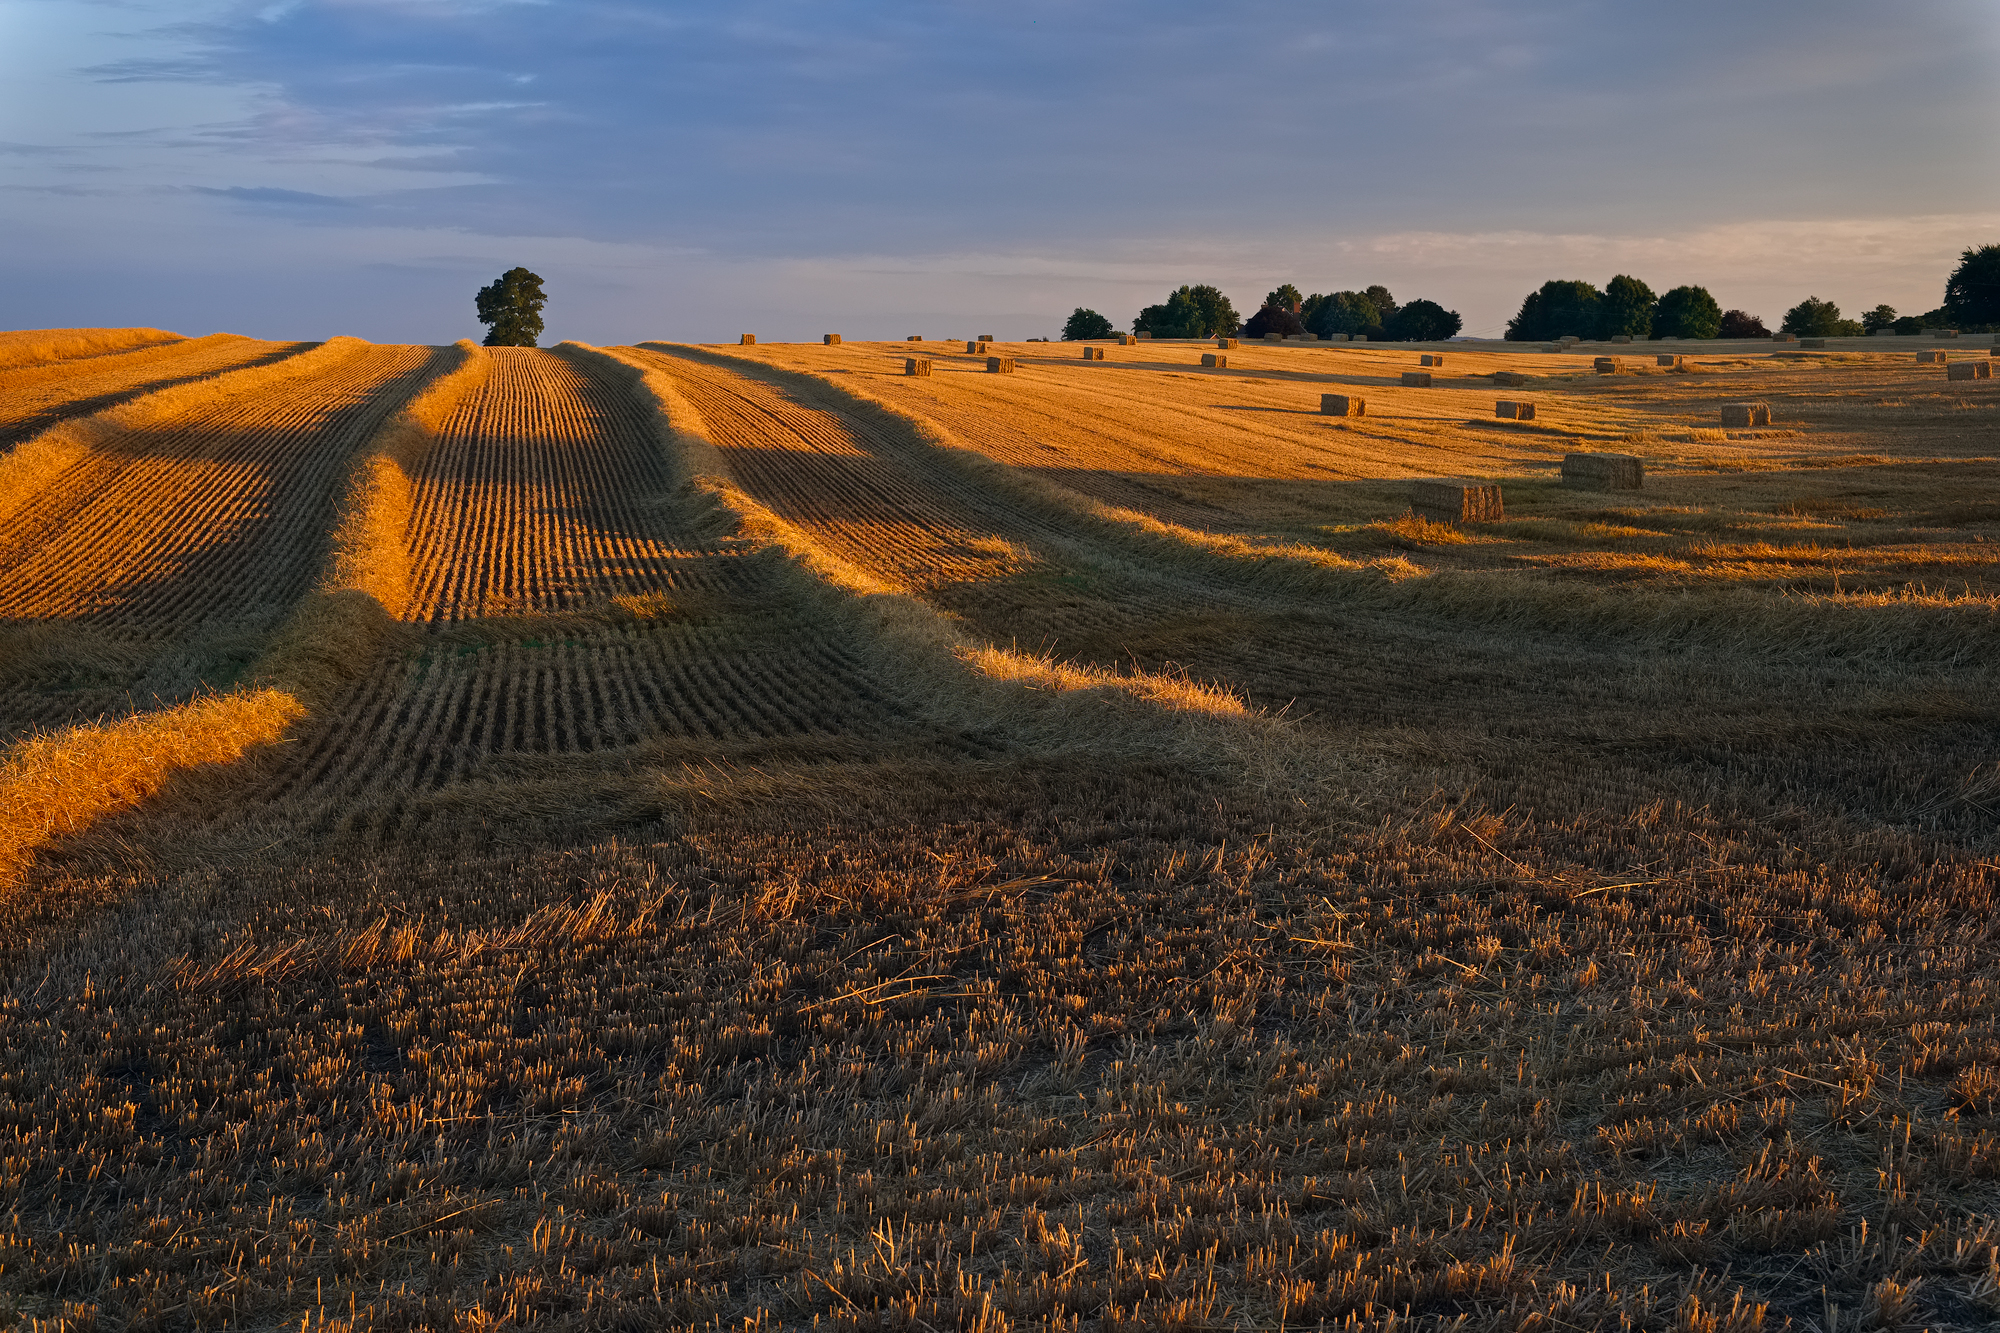 Rows and Bales | Fuji XT-1 and a Fujinon 23mm f1.4 | Image exposed at ISO 400 at f6.4 for 1/125 of a second.